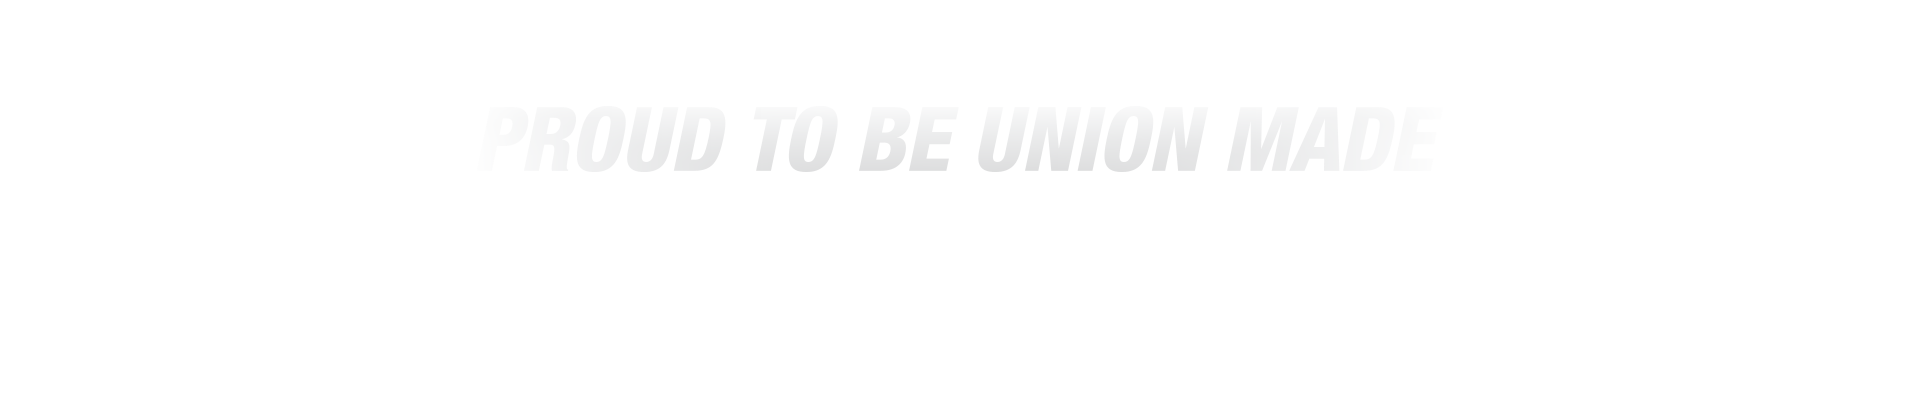 proud to be union made